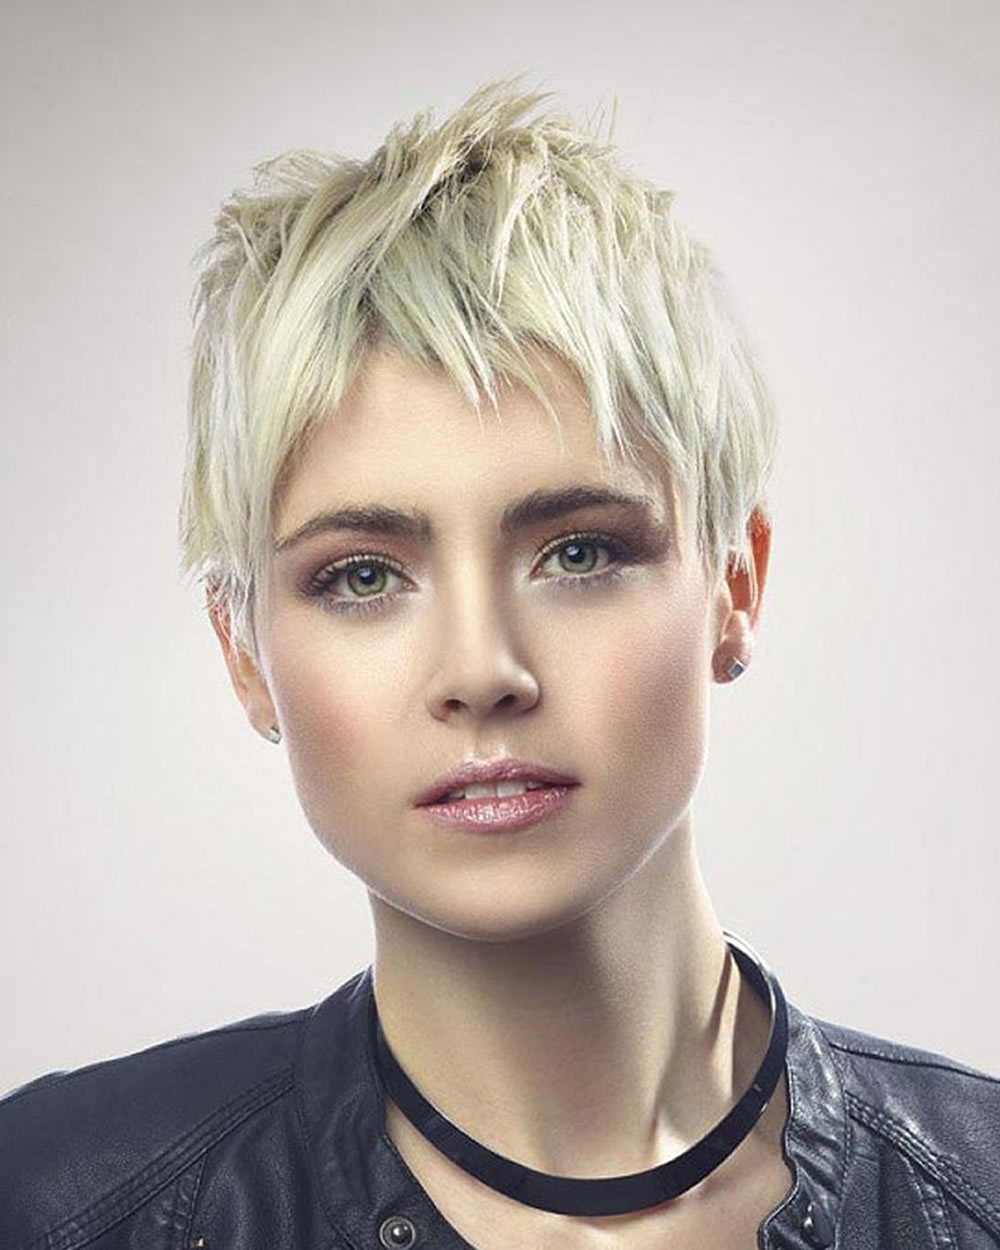 Easy And Fast 34 Pixie Short Haircut Inspirations For 2018 – Hairstyles Within Pixie Short Bob Haircuts (View 13 of 20)